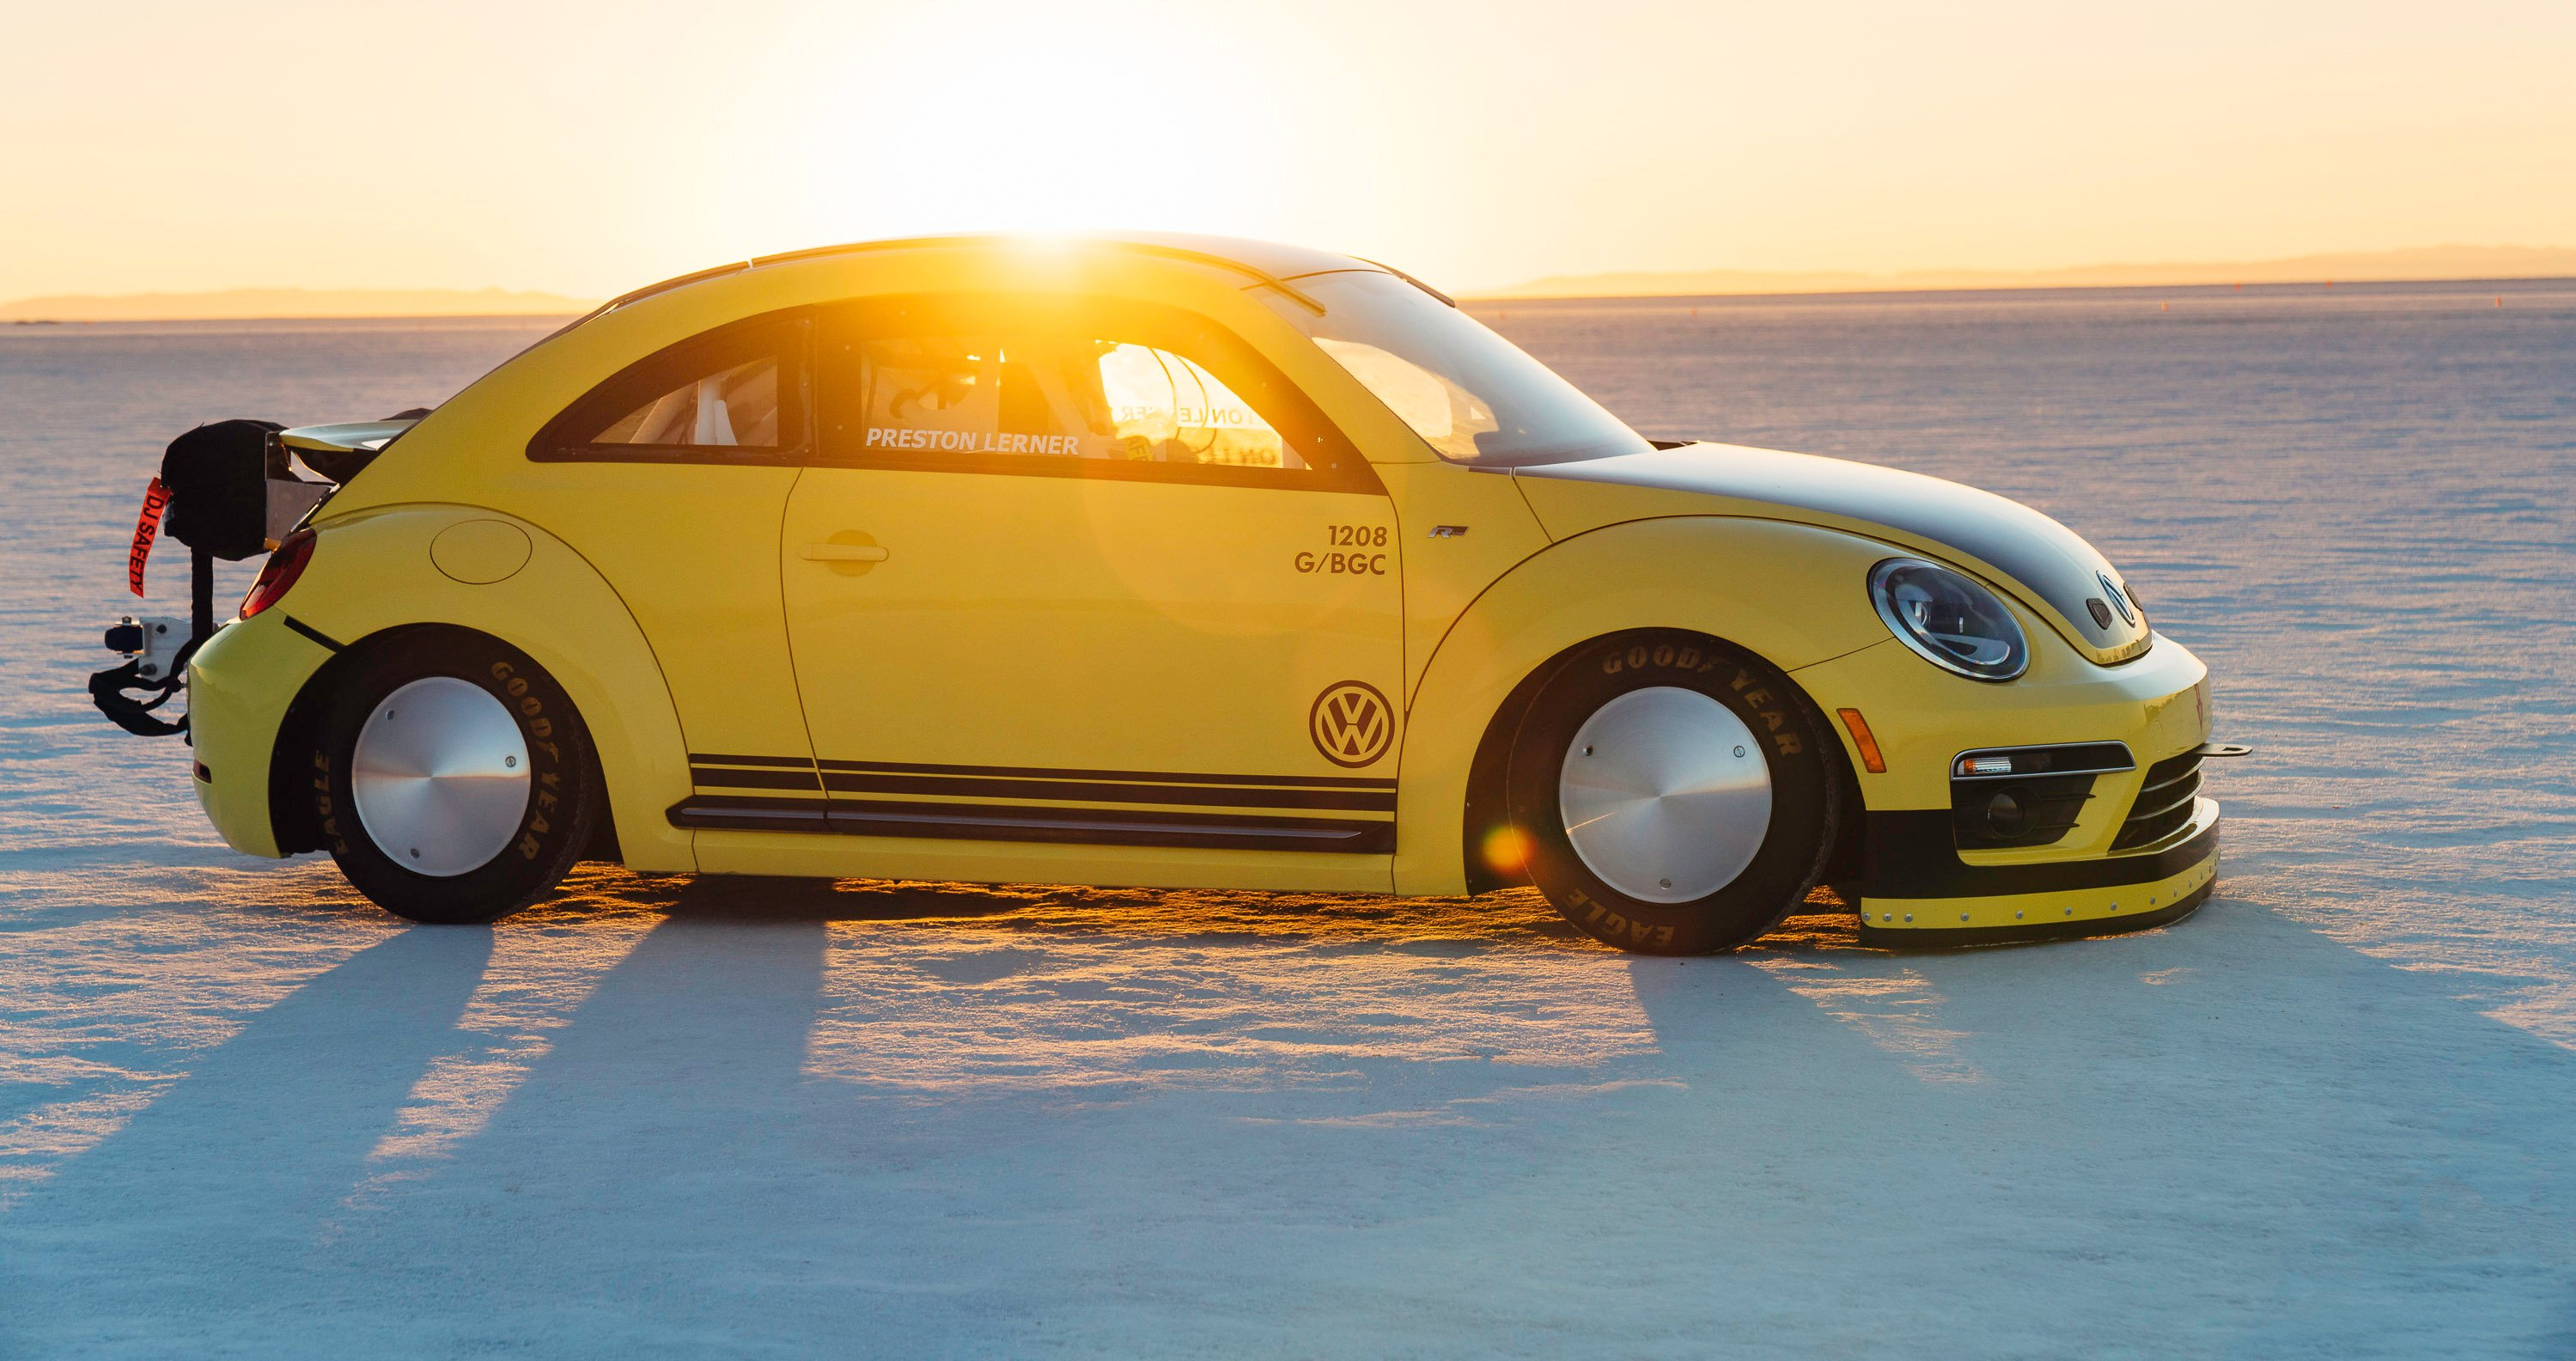 Volkswagen Beetle hits 330km/h at Bonneville Salt Flats: Will the real Bumblebee please stand up ...